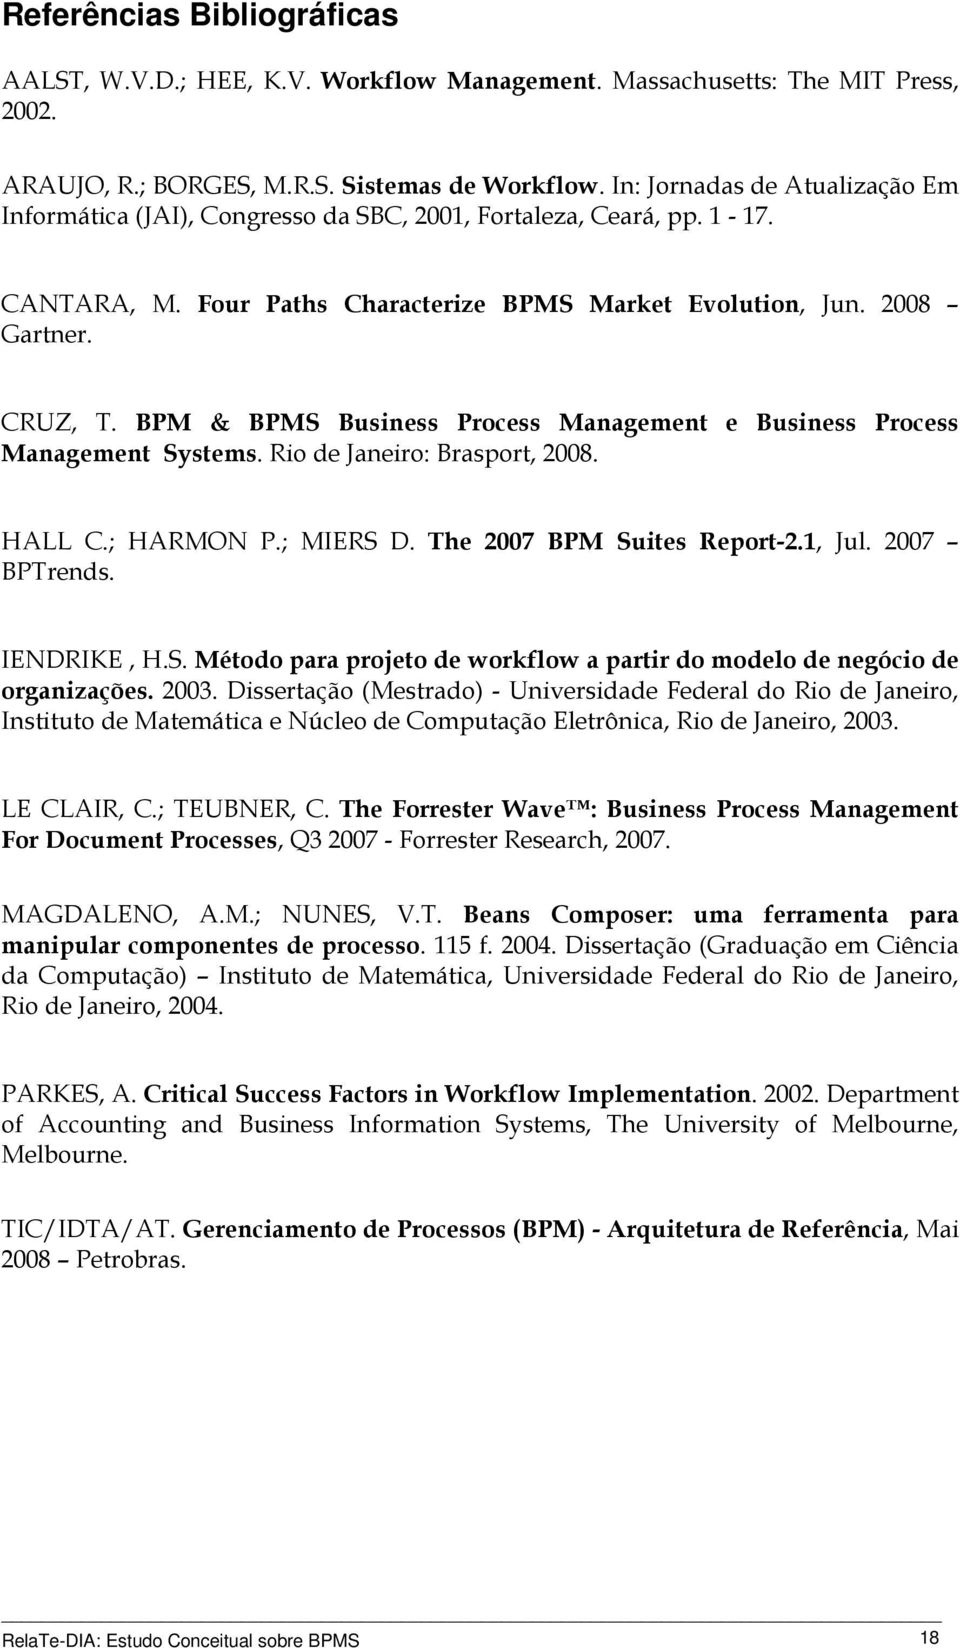 BPM & BPMS Business Process Management e Business Process Management Systems. Rio de Janeiro: Brasport, 2008. HALL C.; HARMON P.; MIERS D. The 2007 BPM Suites Report-2.1, Jul. 2007 BPTrends.